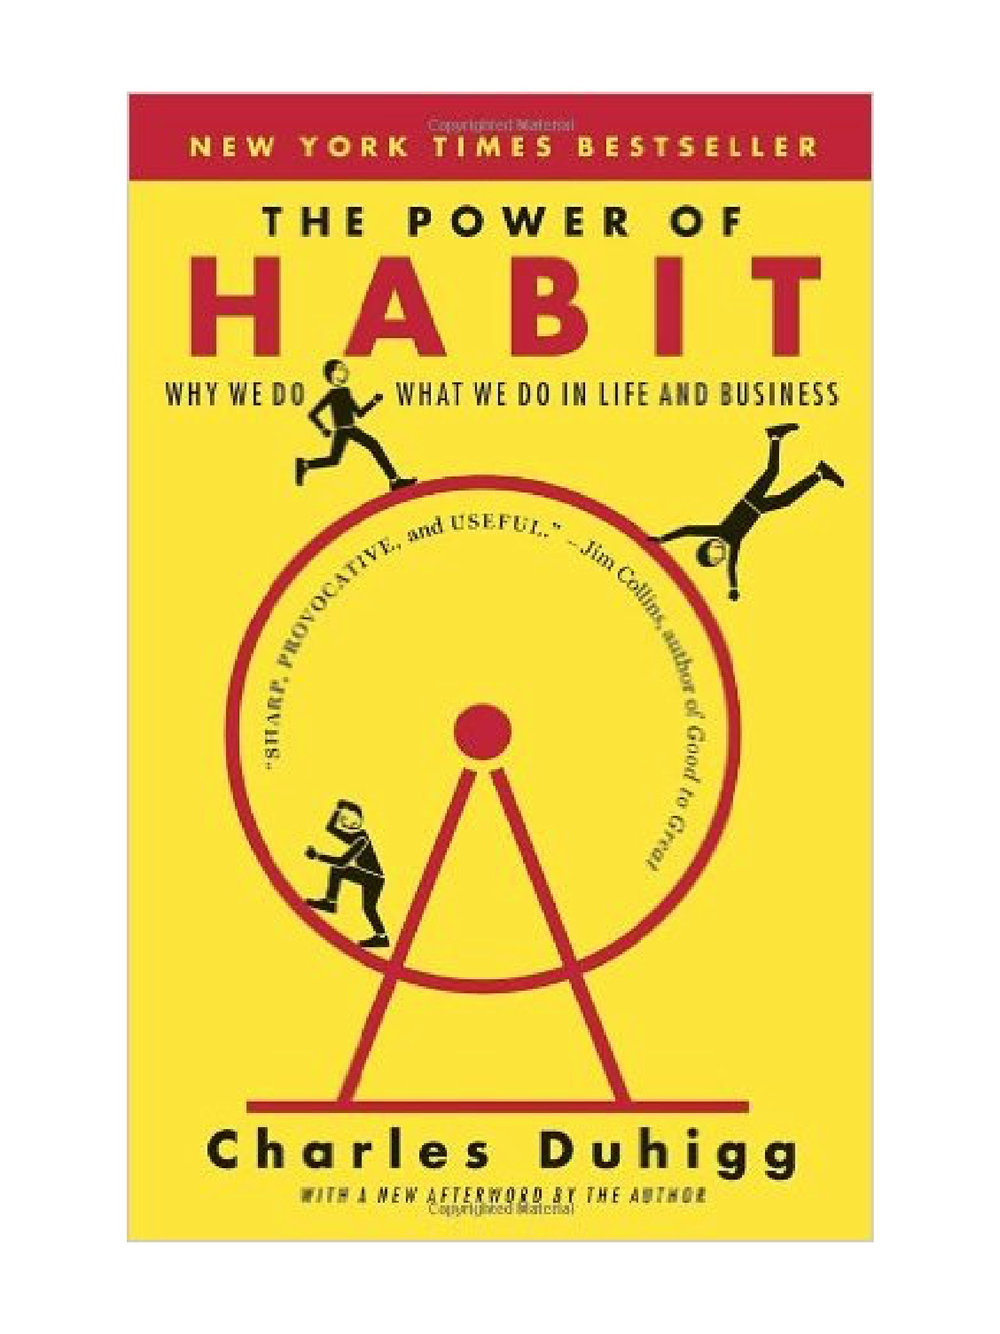 THE POWER OF HABIT buy now